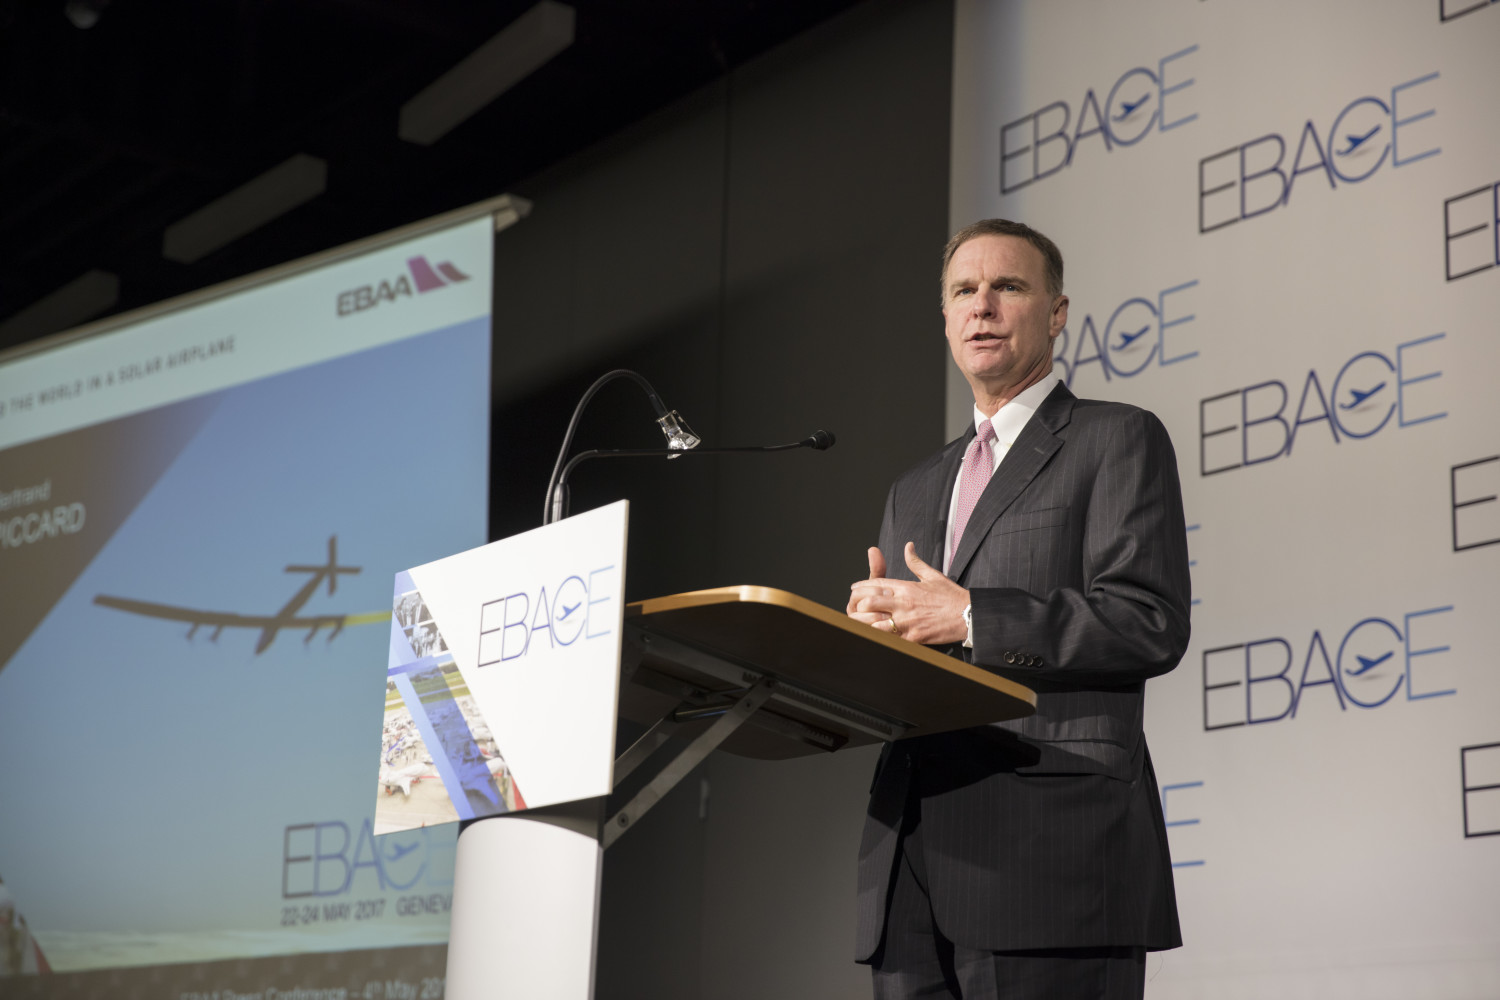 Ed Bolen at the EBACE 2017